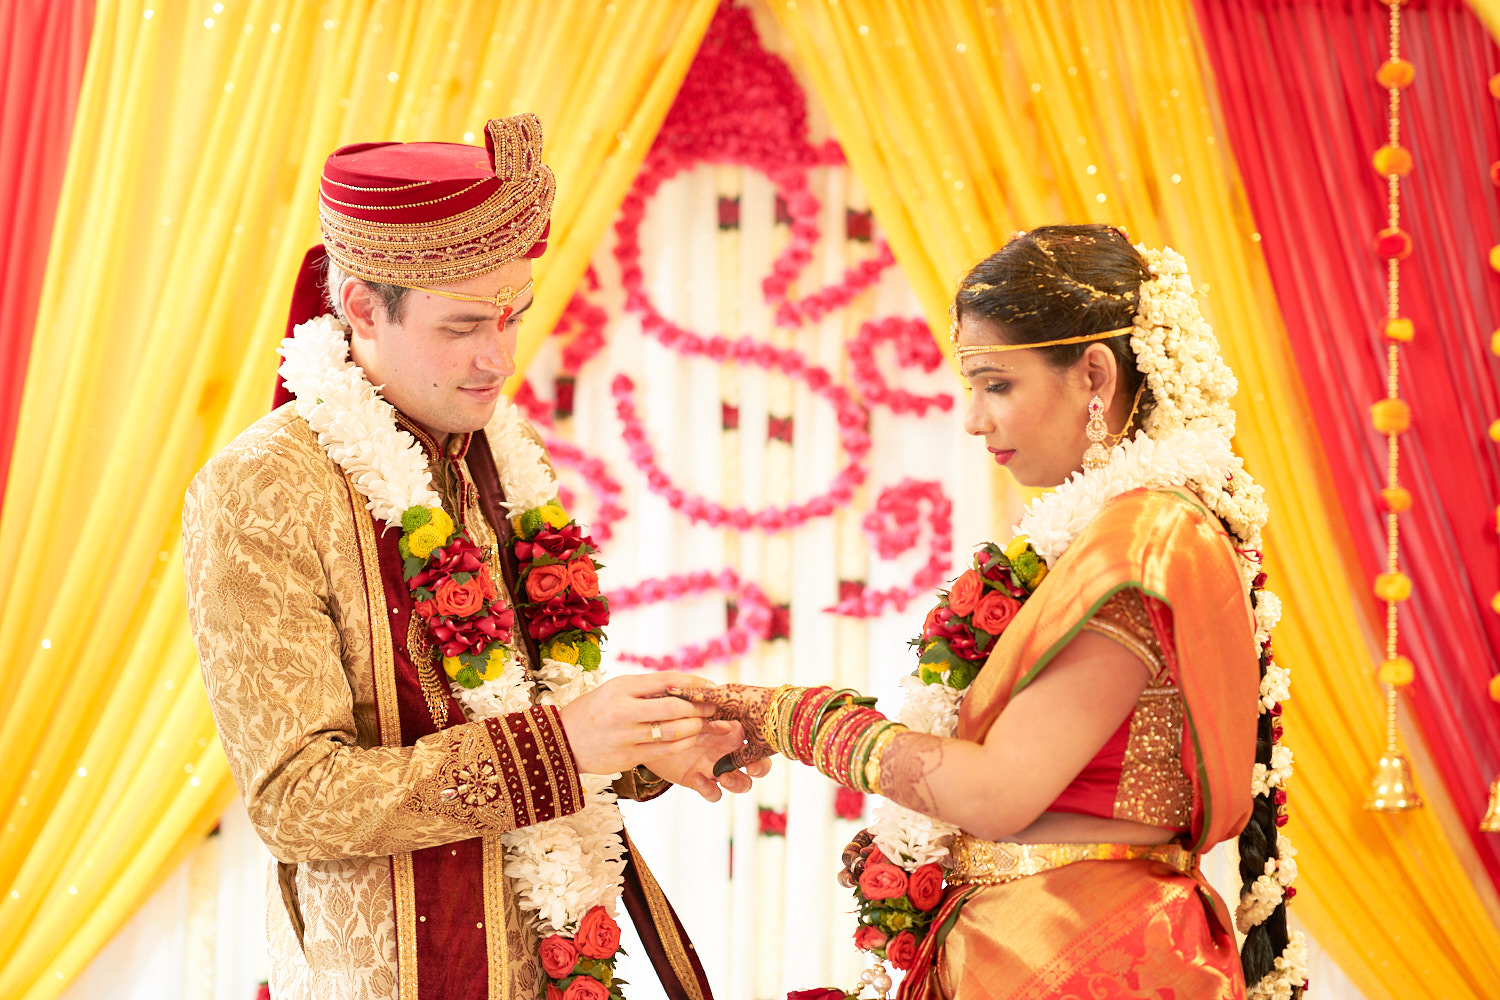 south-indian-wedding-ceremony-photography-by-afewgoodclicks-net-in-saratoga 254.jpg